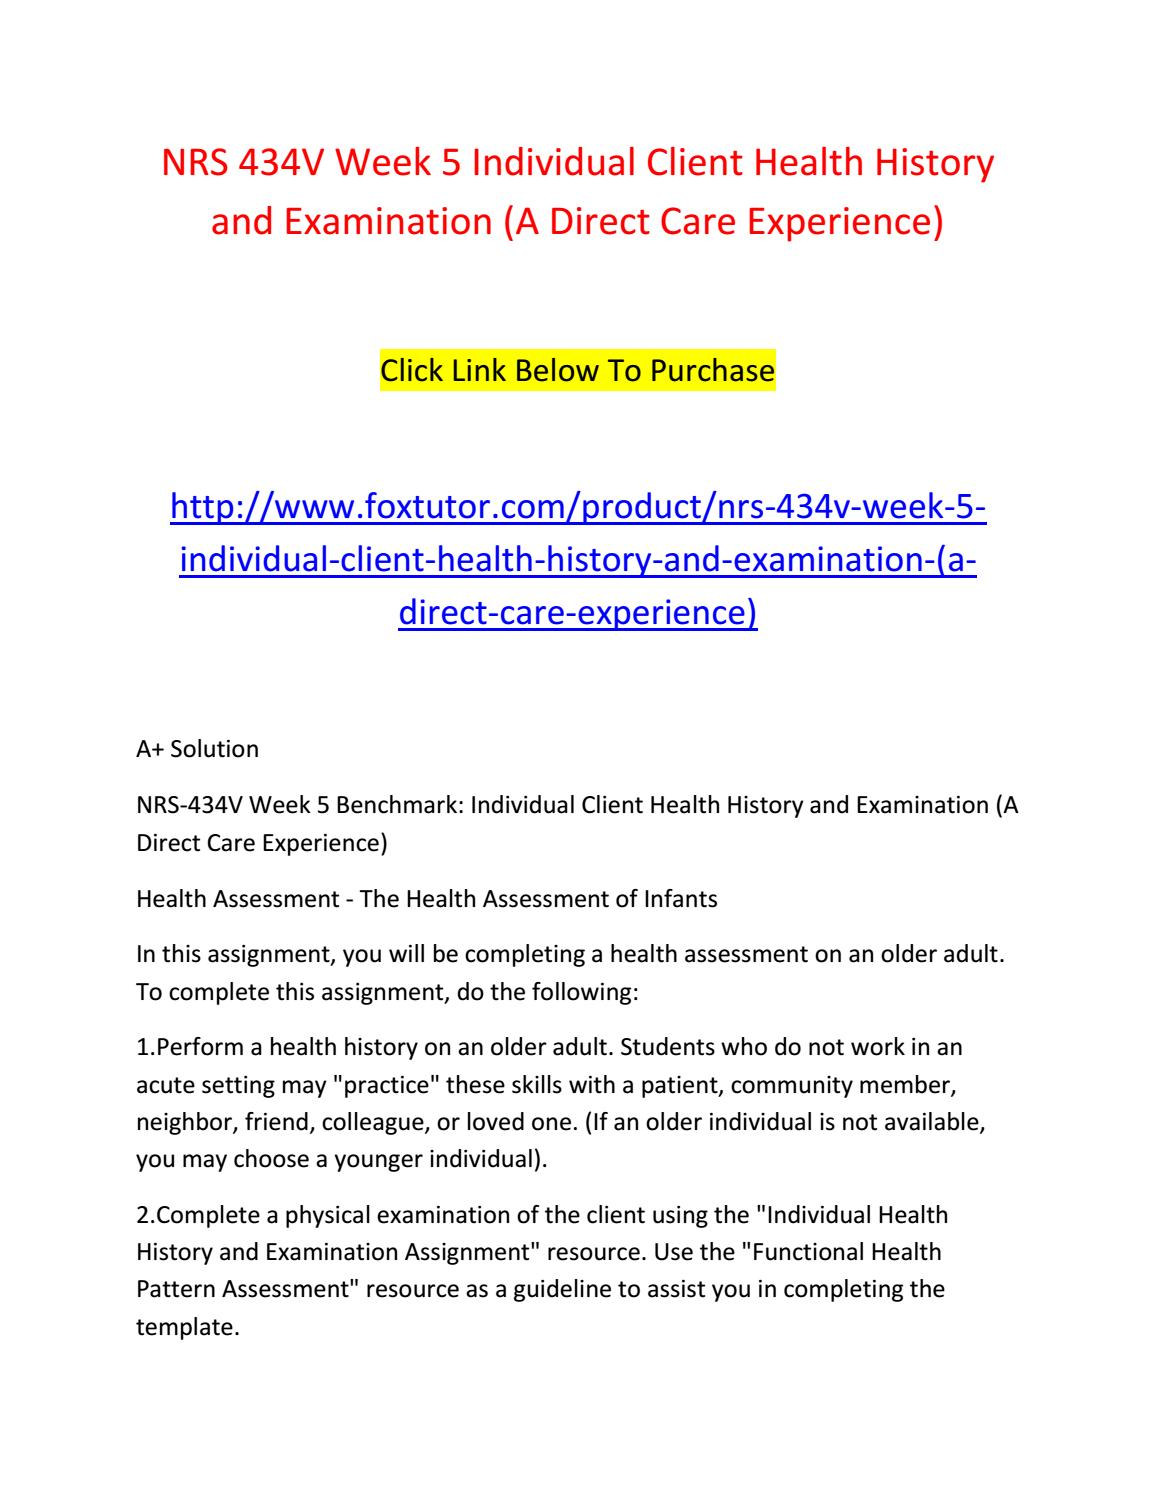 individual health history and examination nrs 434 Adult health history running head adult health history adult health history and examination michelle pierson, rn grand canyon university health assessment nrs 434-v lisa zamudio september 29, 2012 health history and.